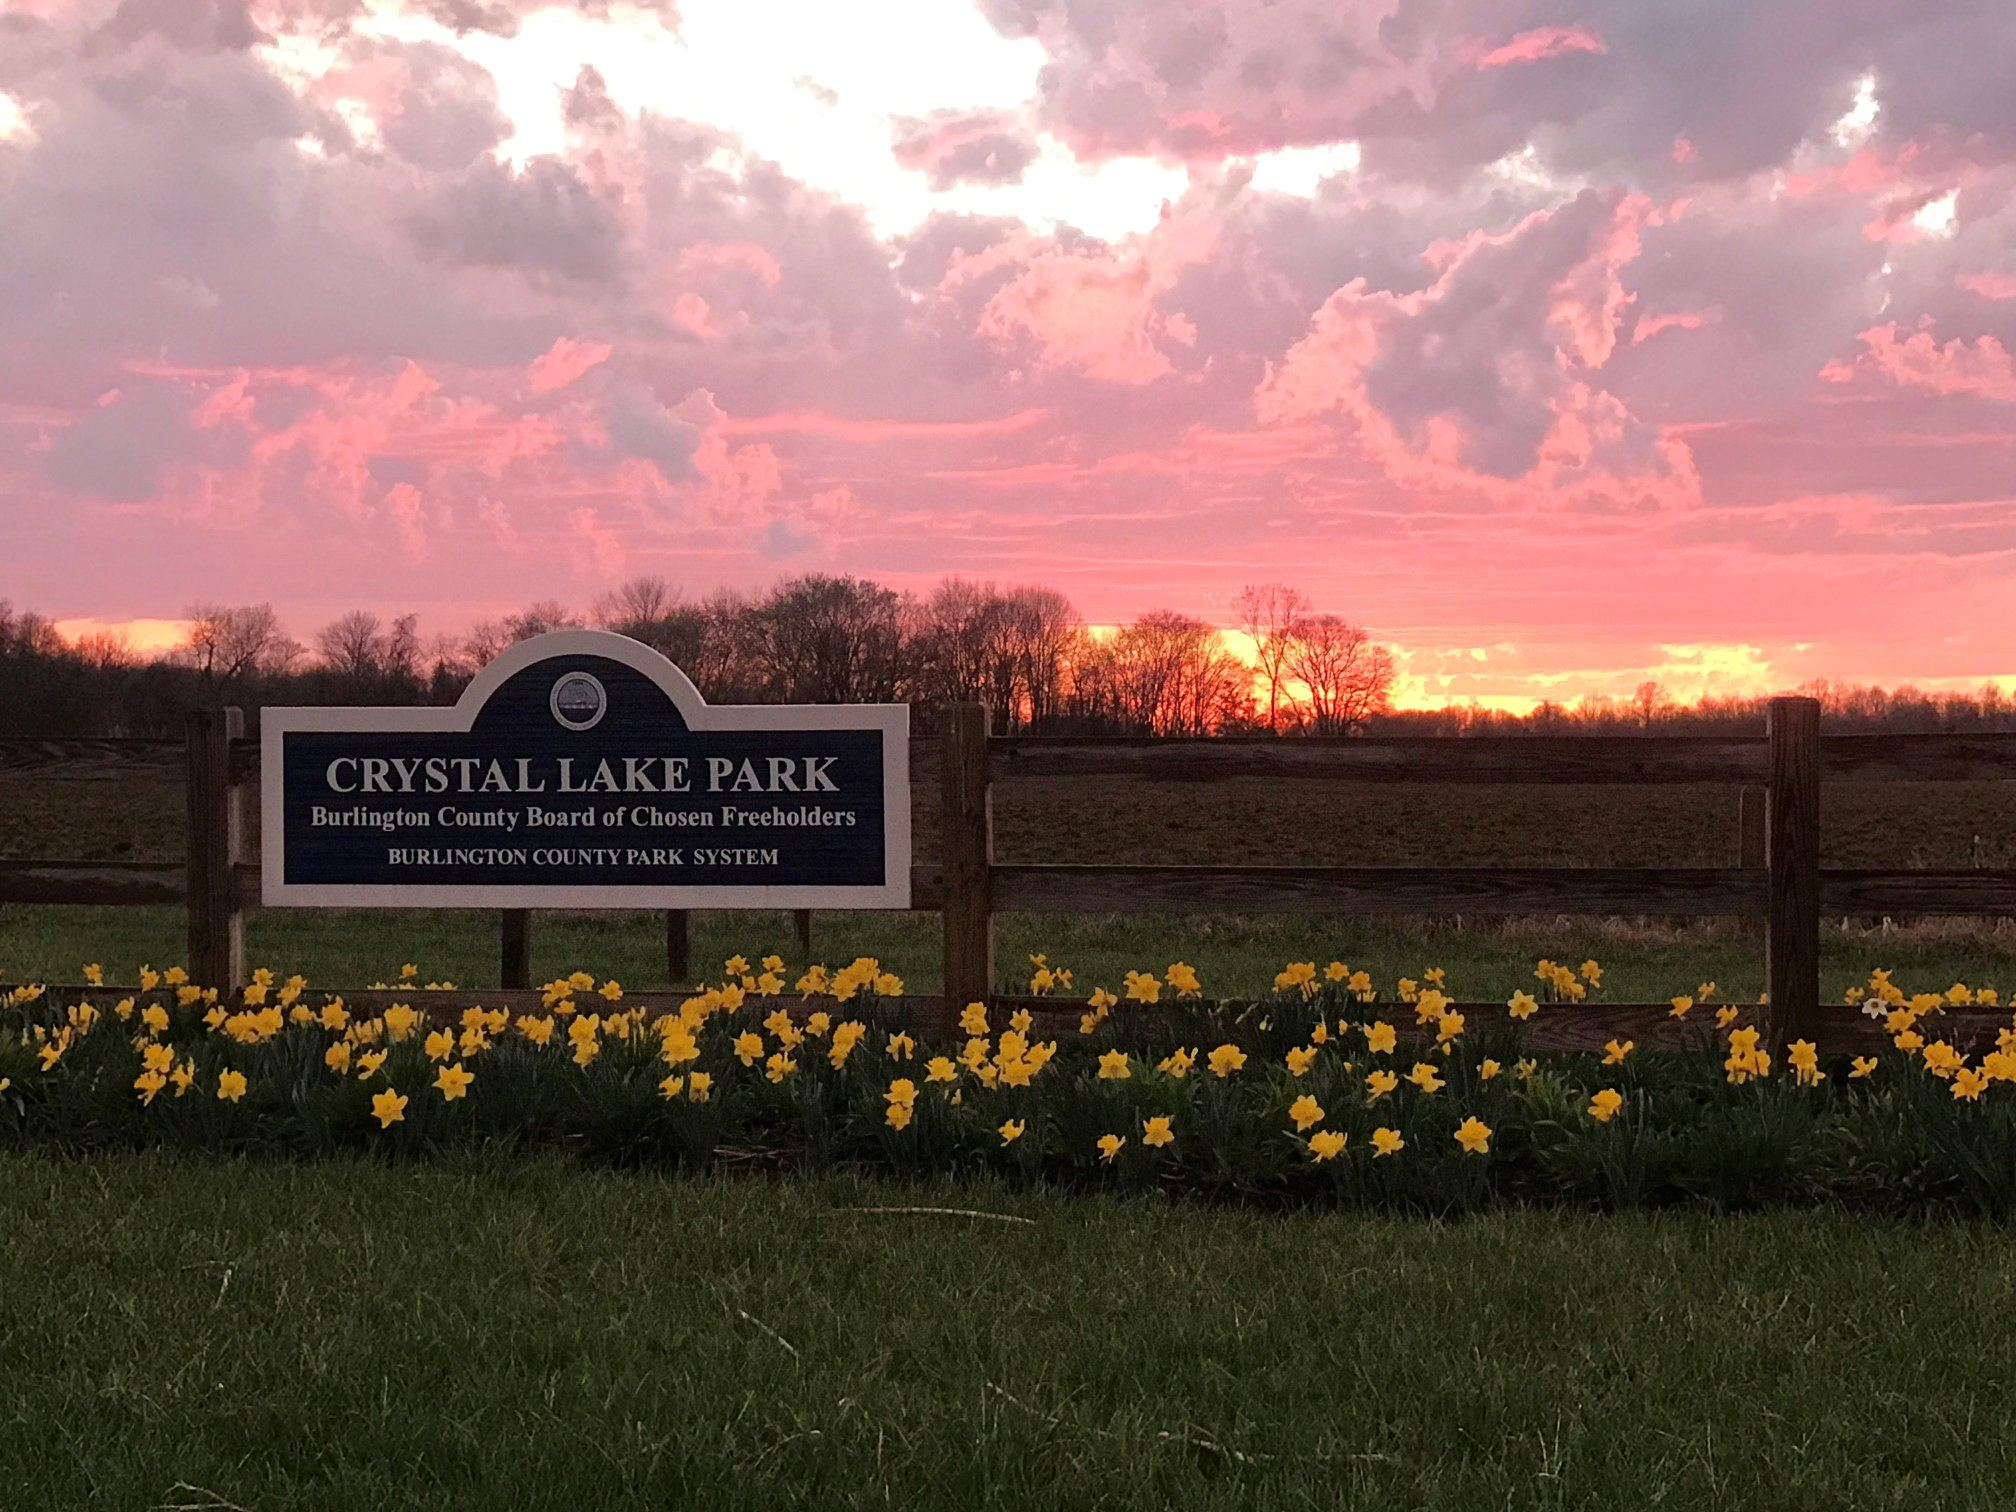 Crystal Lake Park